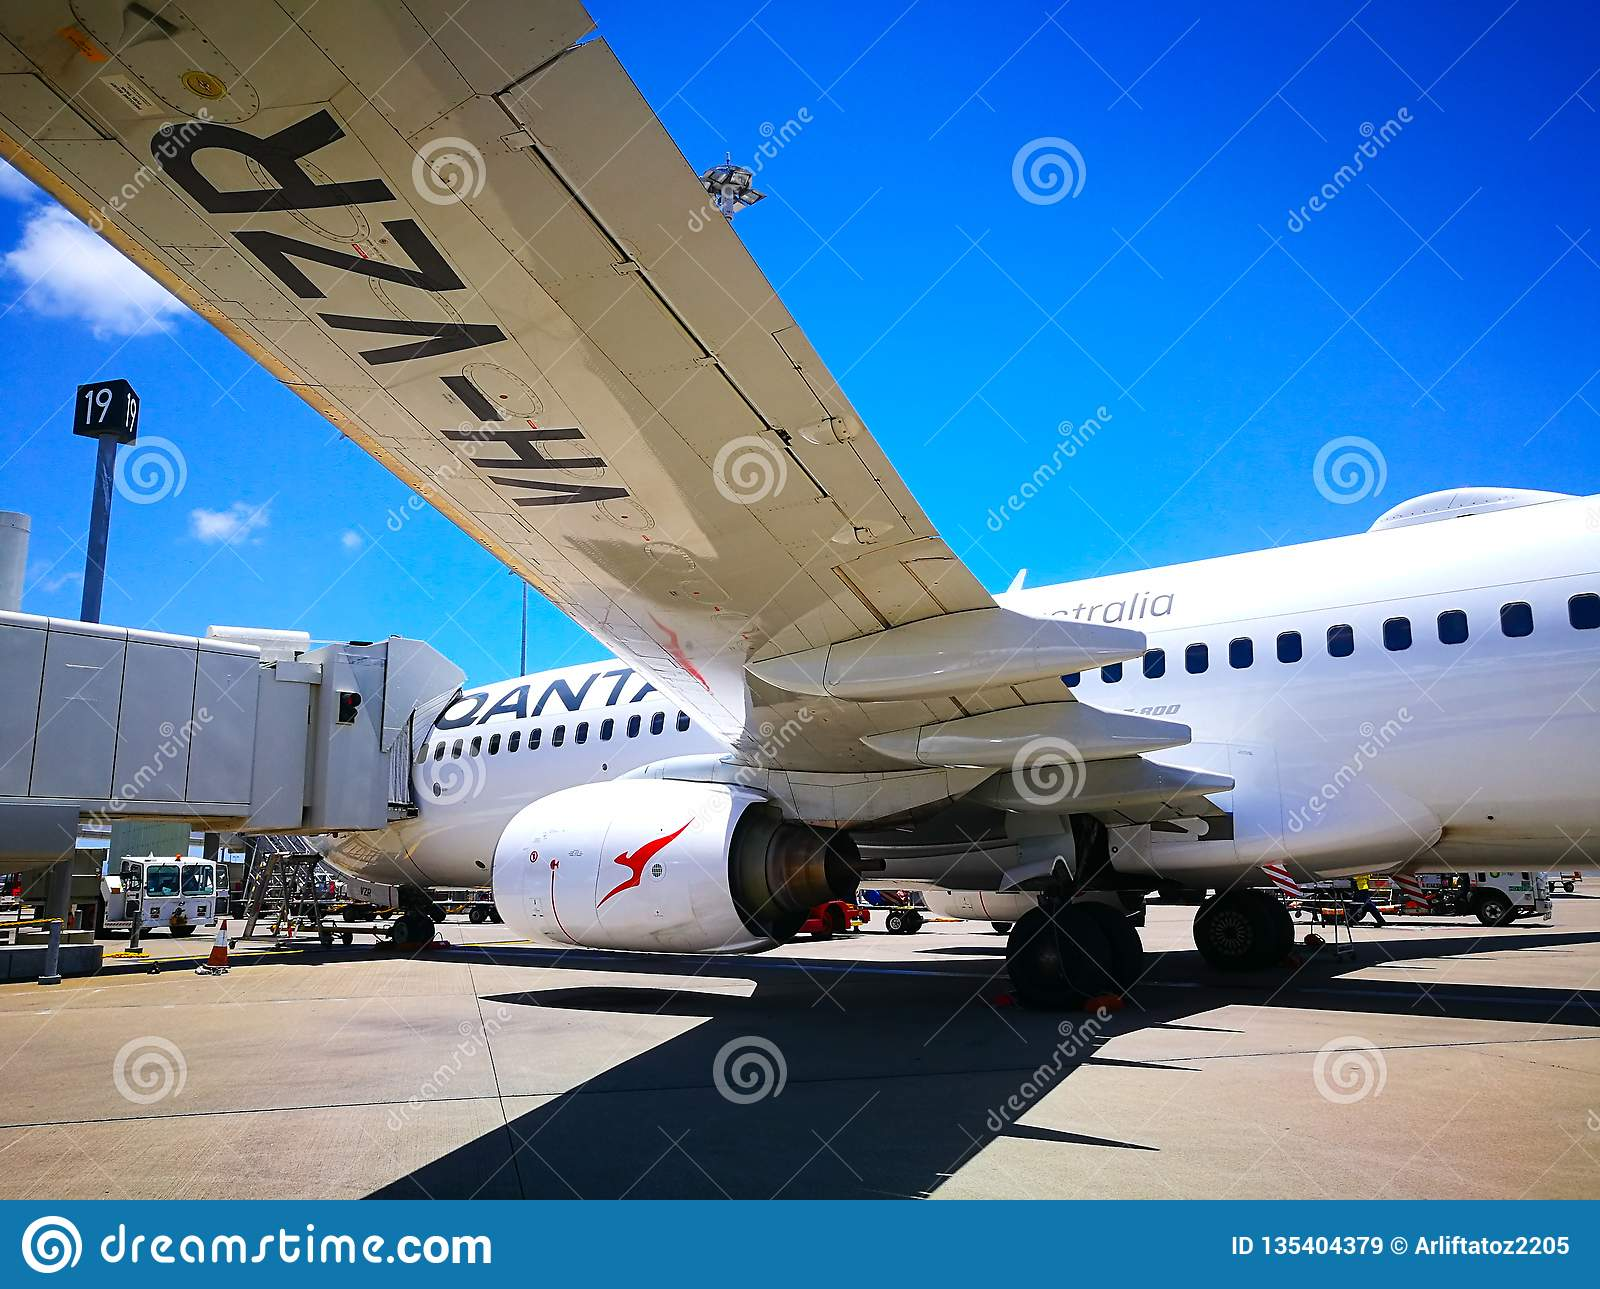 The view under the plane left wing of Qantas domestic airline Aircraft Type: Boeing 737 on the runway.